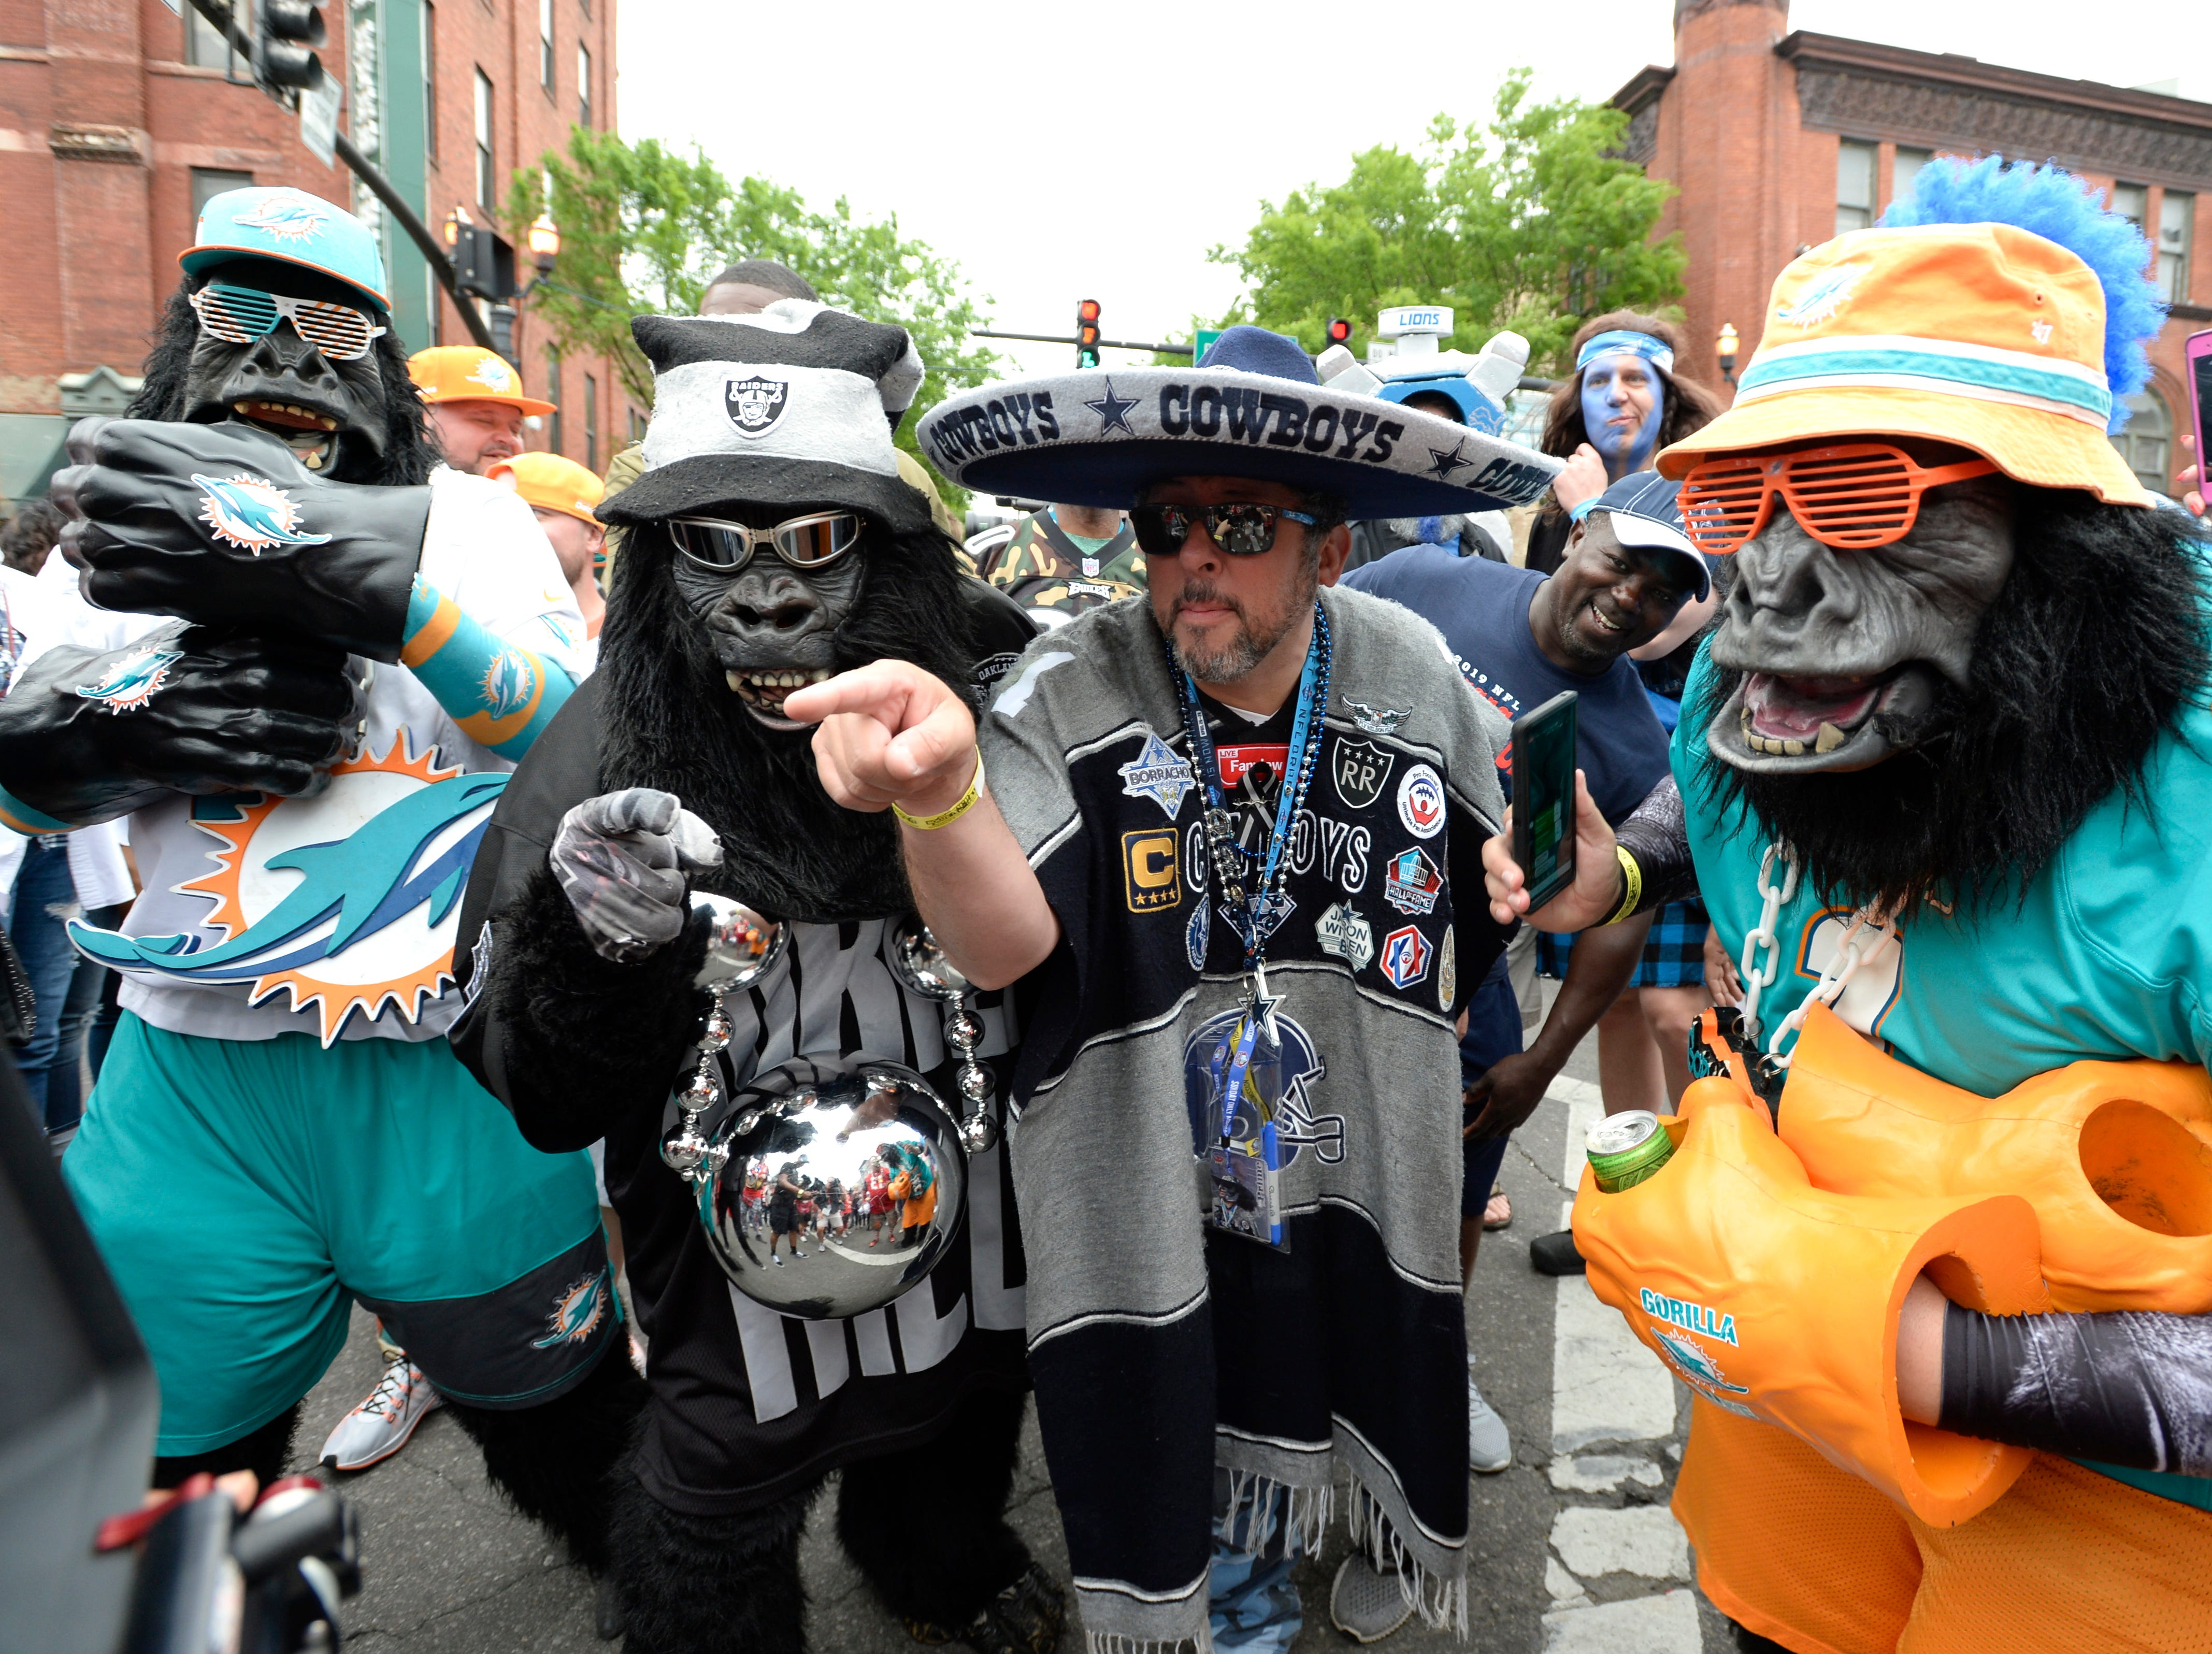 Miami, Oakland and Dallas fans celebrate before the start of the first round of the NFL Draft Thursday, April 25, 2019 in Nashville, Tenn.